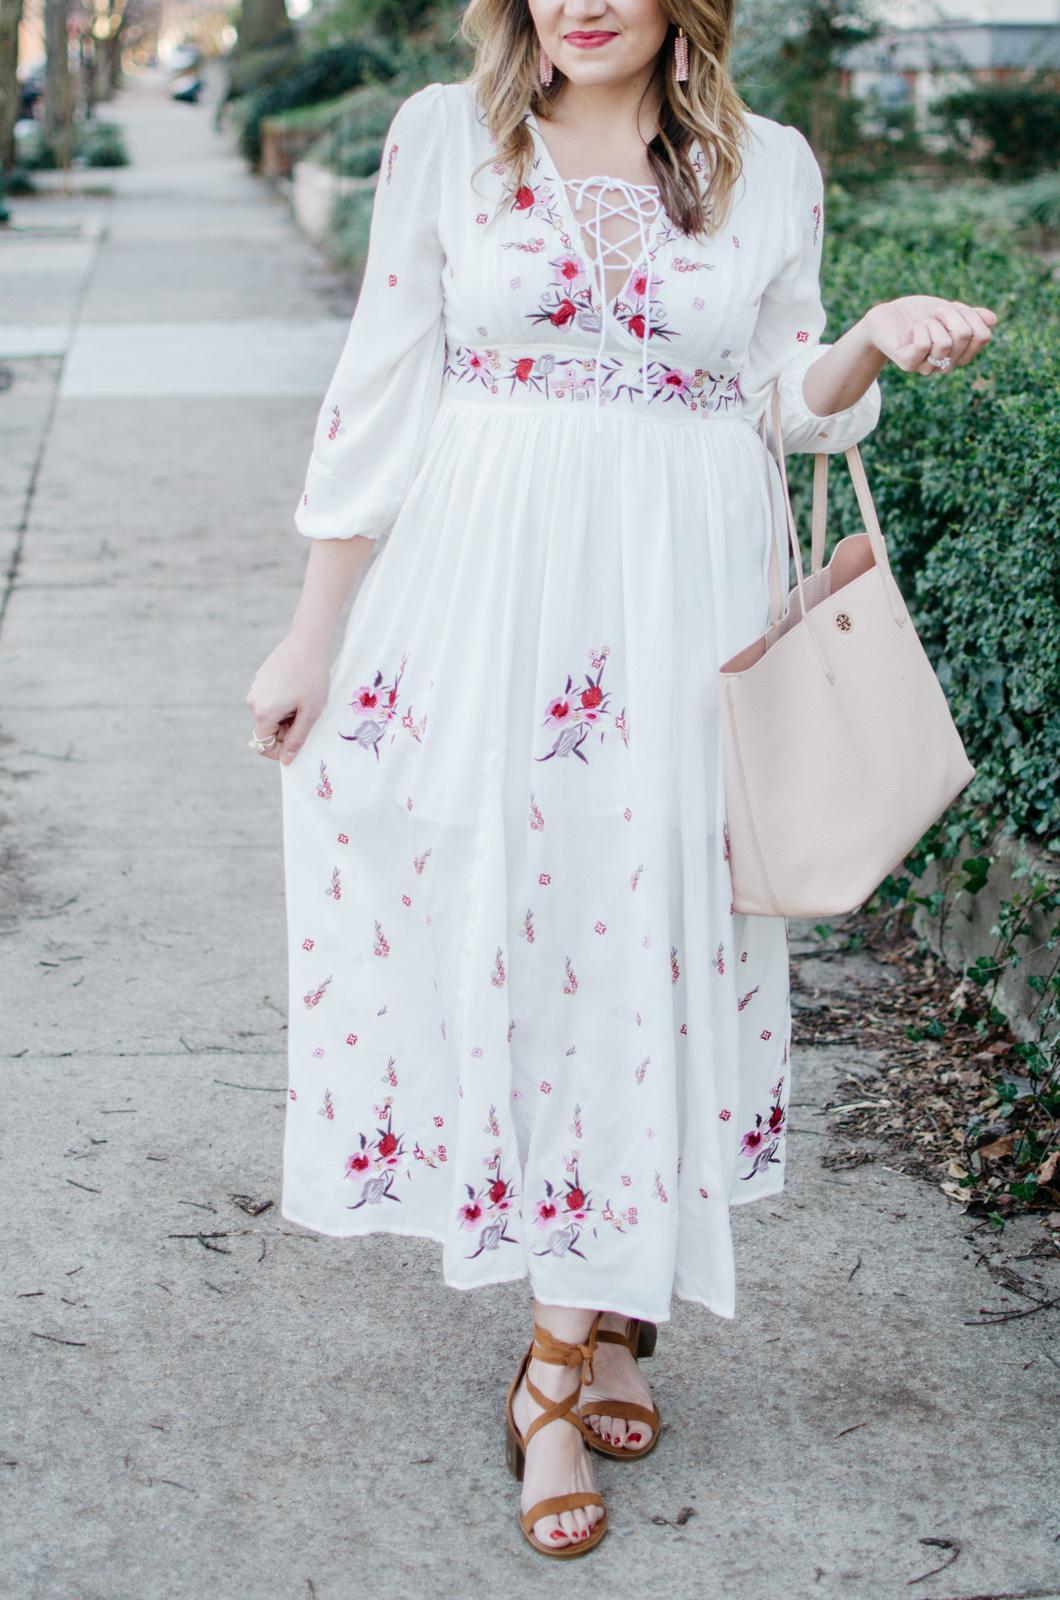 embroidered maxi dress - spring boho outfit - Click through for more cute Spring outfits or to shop this look! | www.bylaurenm.com